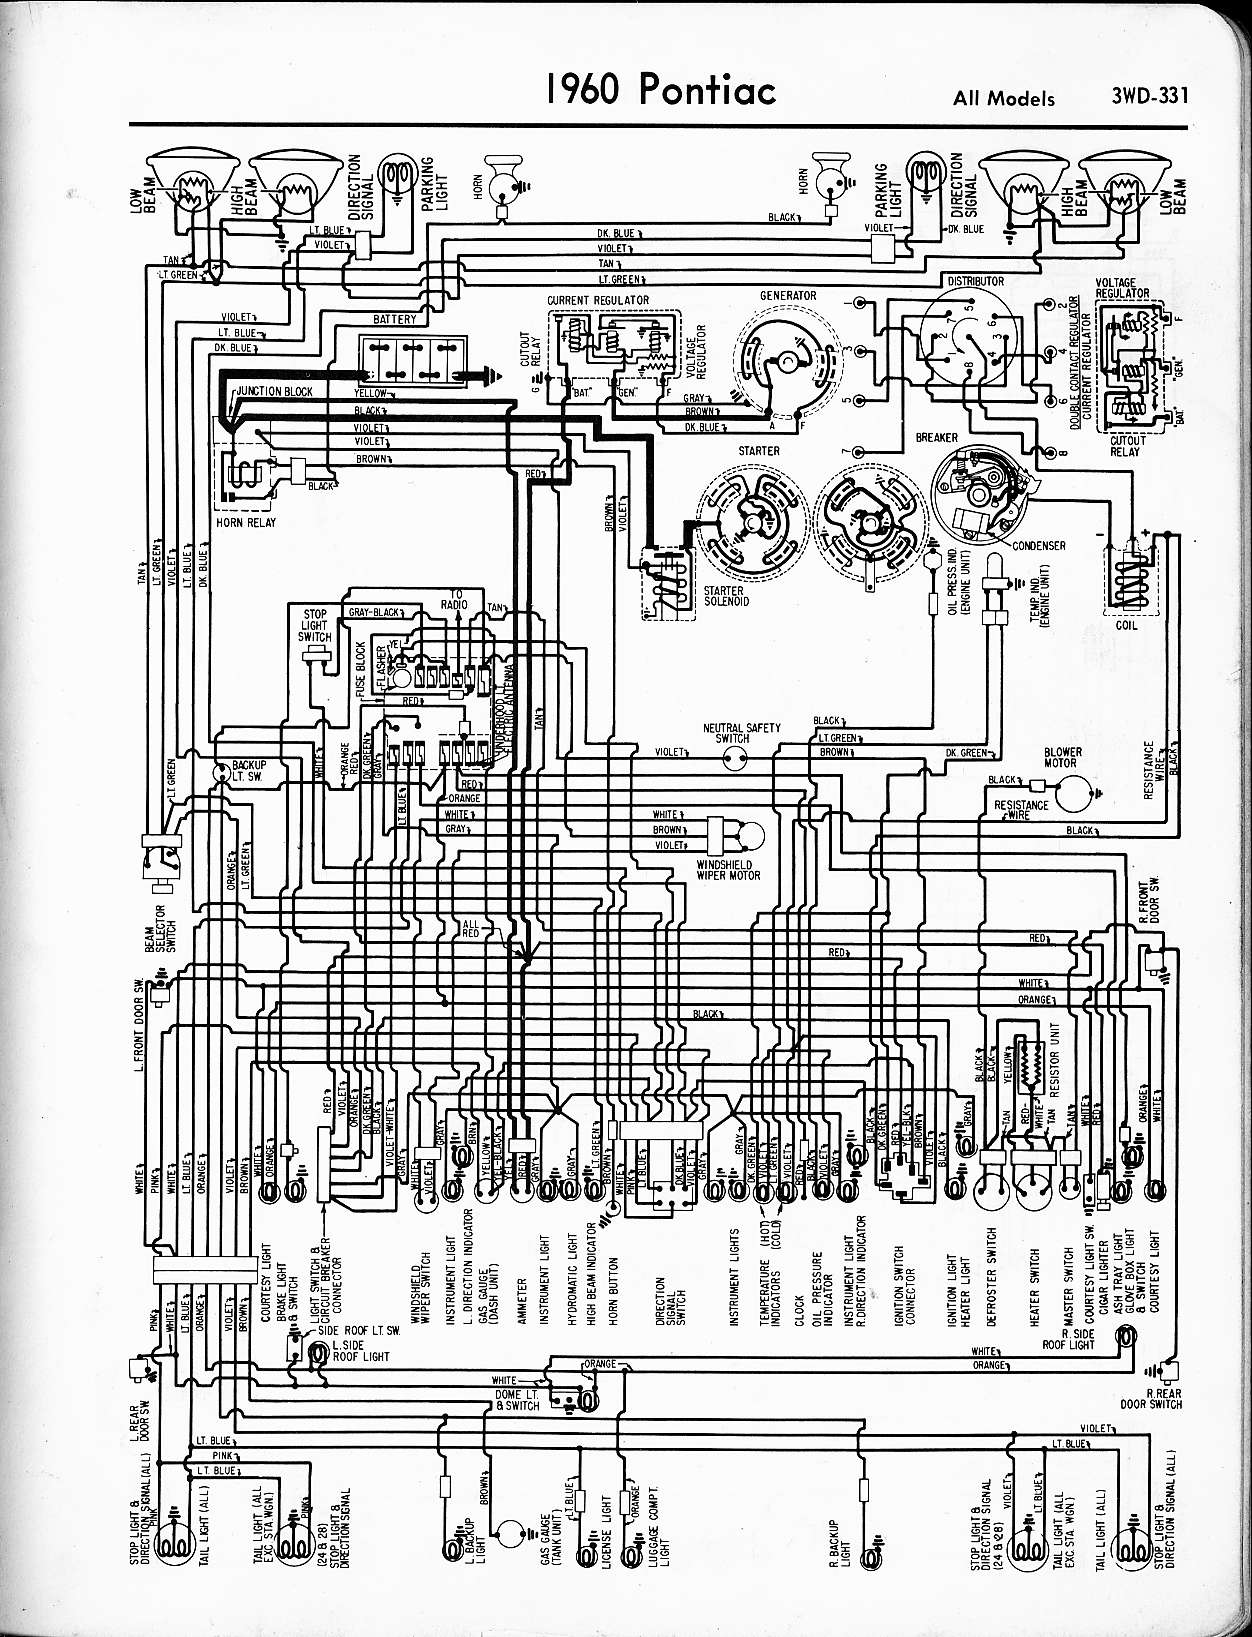 1974 Firebird Wiper Wiring Diagram Free Download Reinvent Your Also 72 Vw Beetle As Well 1972 Pontiac Pictures U2022 Rh Mapavick Co Uk 1971 Chevy C10 1979 Camaro